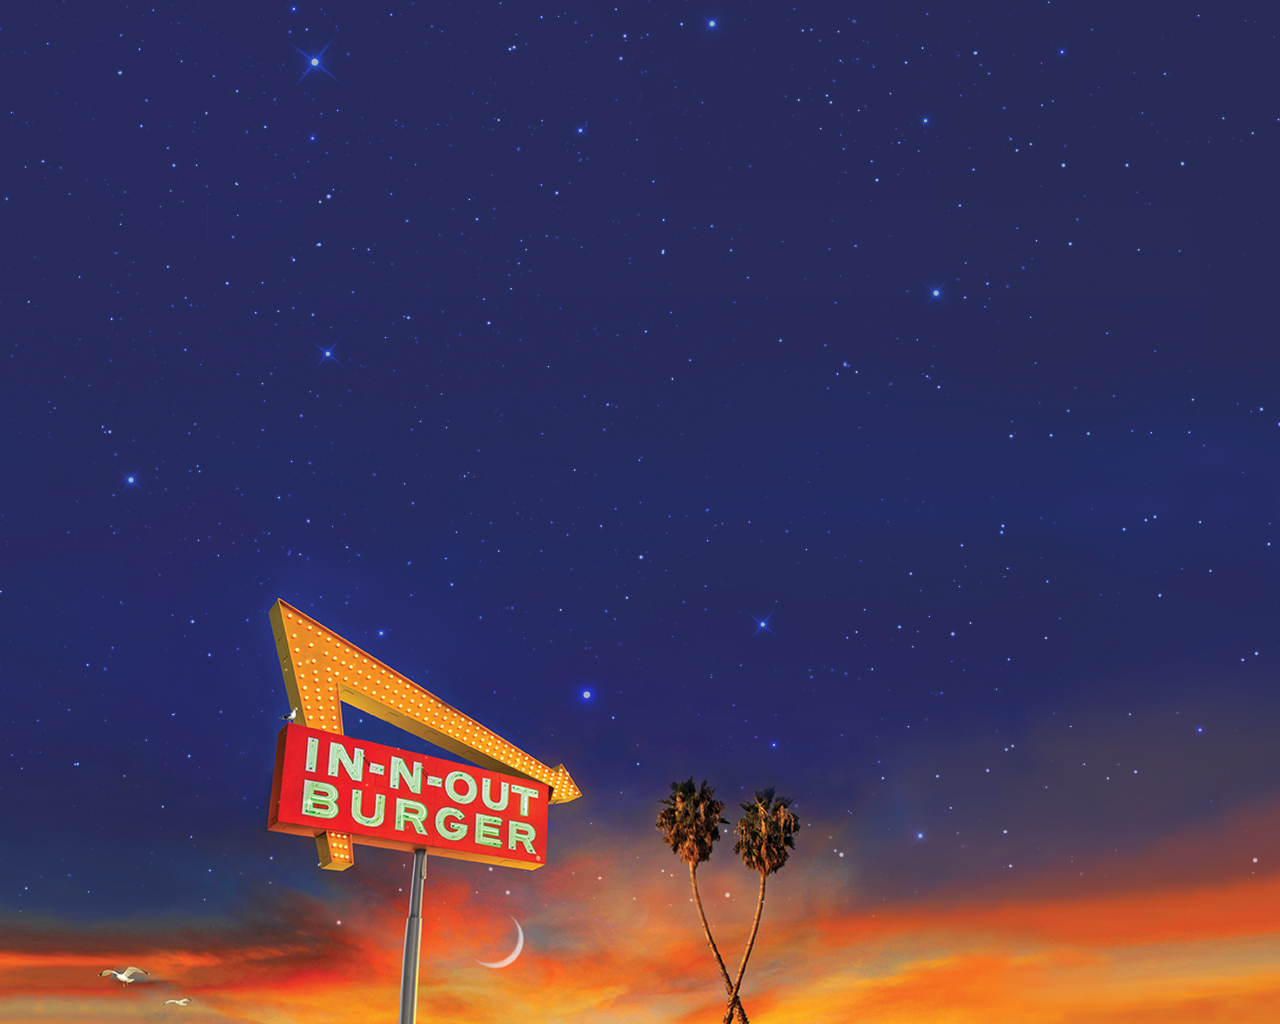 Best 56 In N Out Burger Wallpaper on HipWallpaper Fallout 3 1280x1024